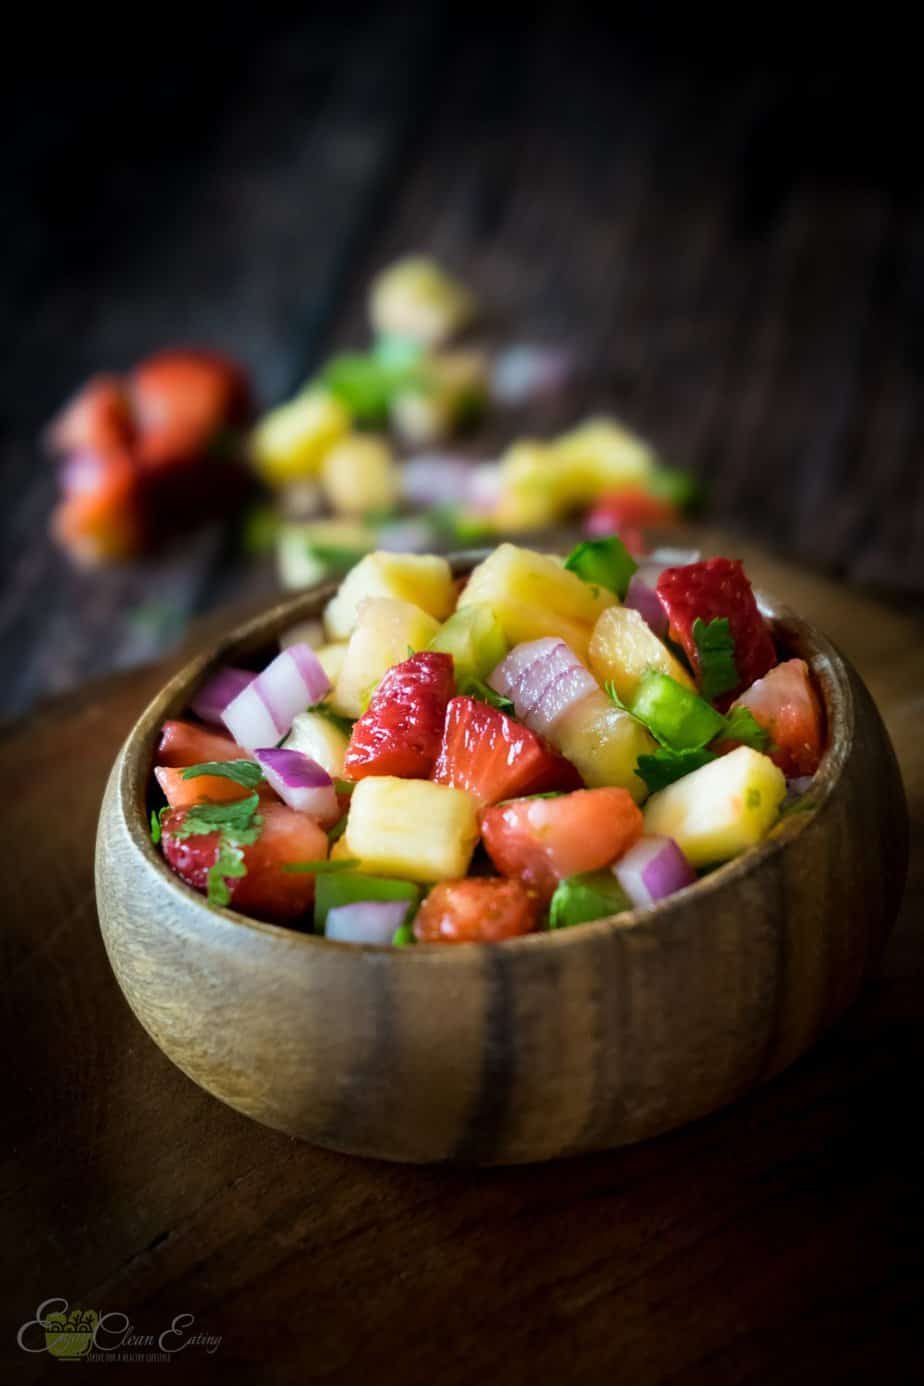 serve salad in a small wooden bowl with beautiful vibrant colors